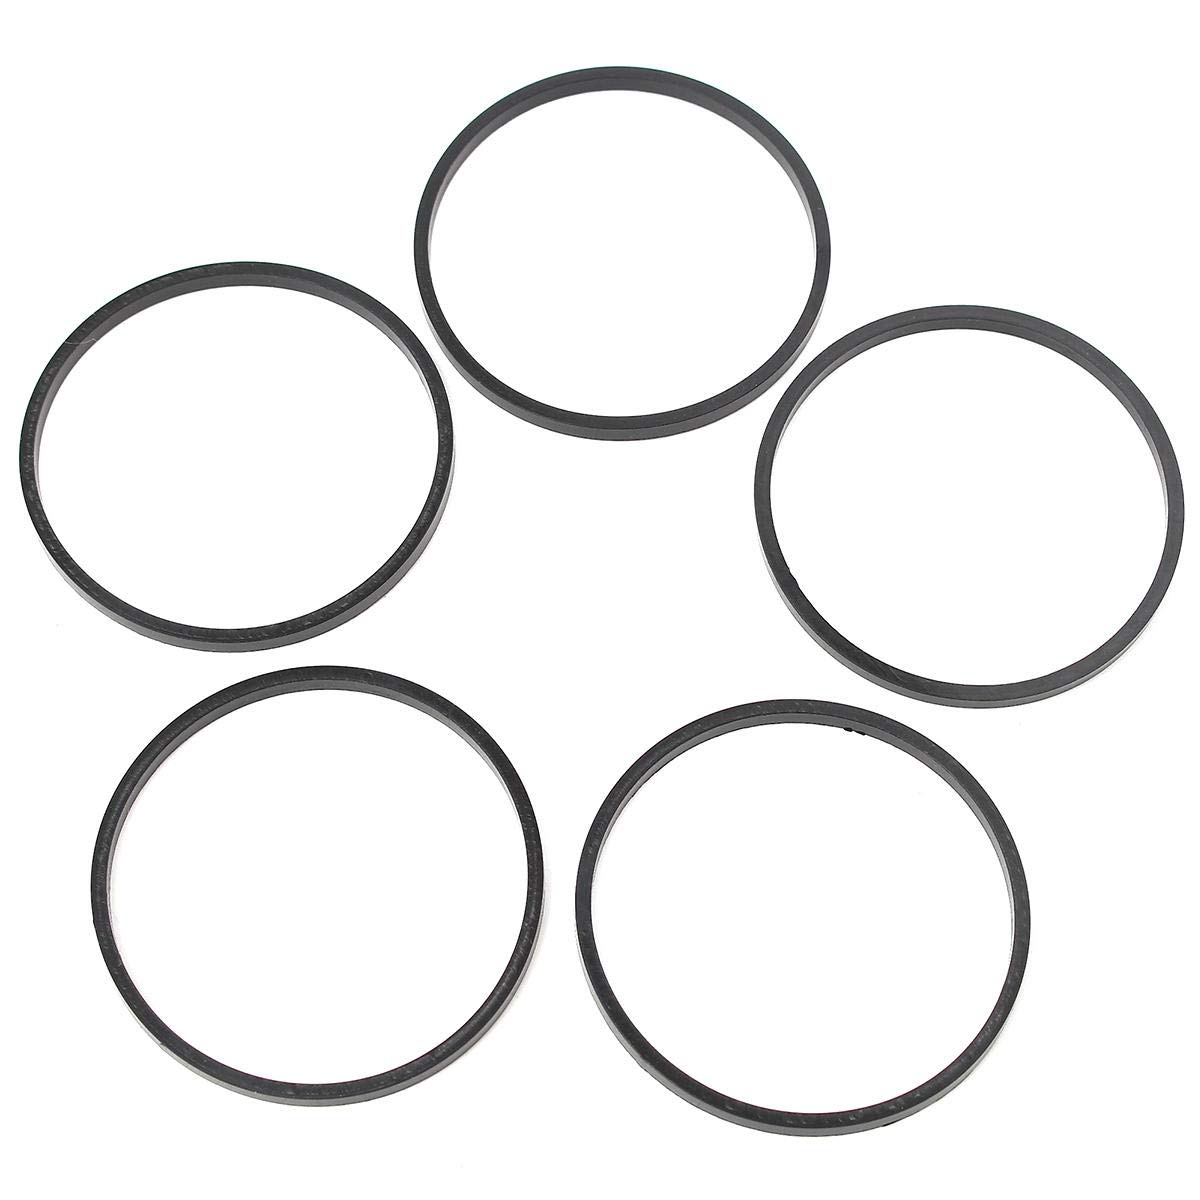 5Pcs Carburetor Float Bowl Black Gaskets For TECUMSEH 631028 631028A 631867